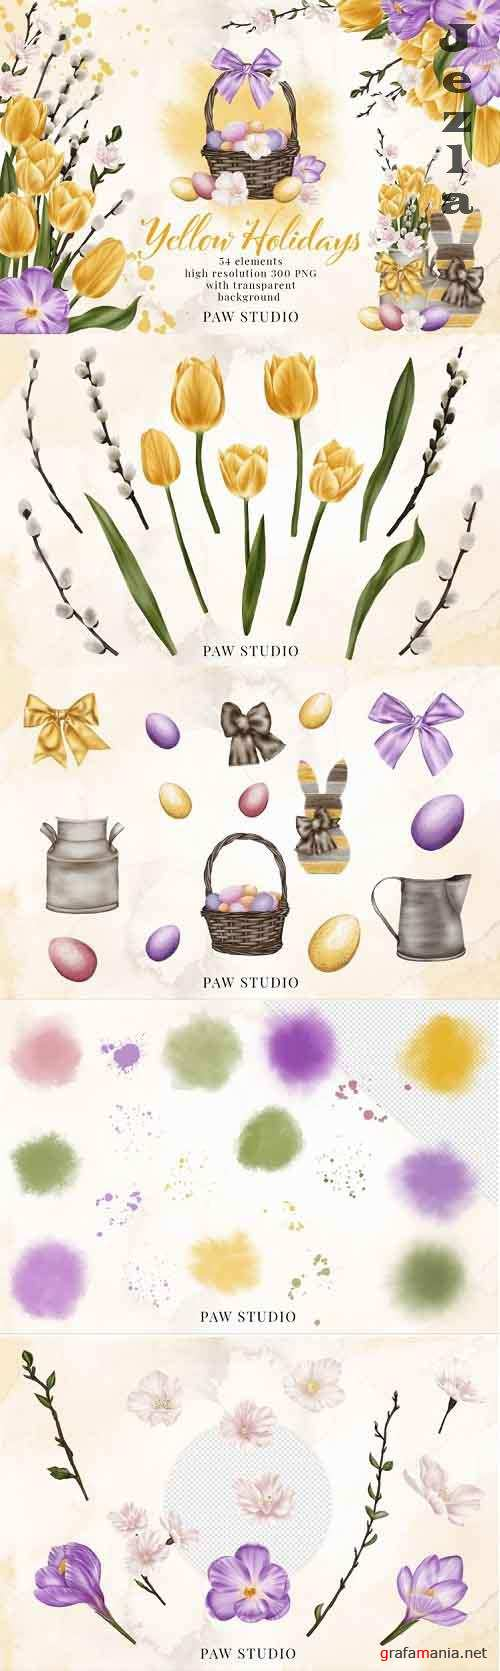 Easter Spring Clipart Yellow Tulips Willow Twigs Basket Eggs - 1187914